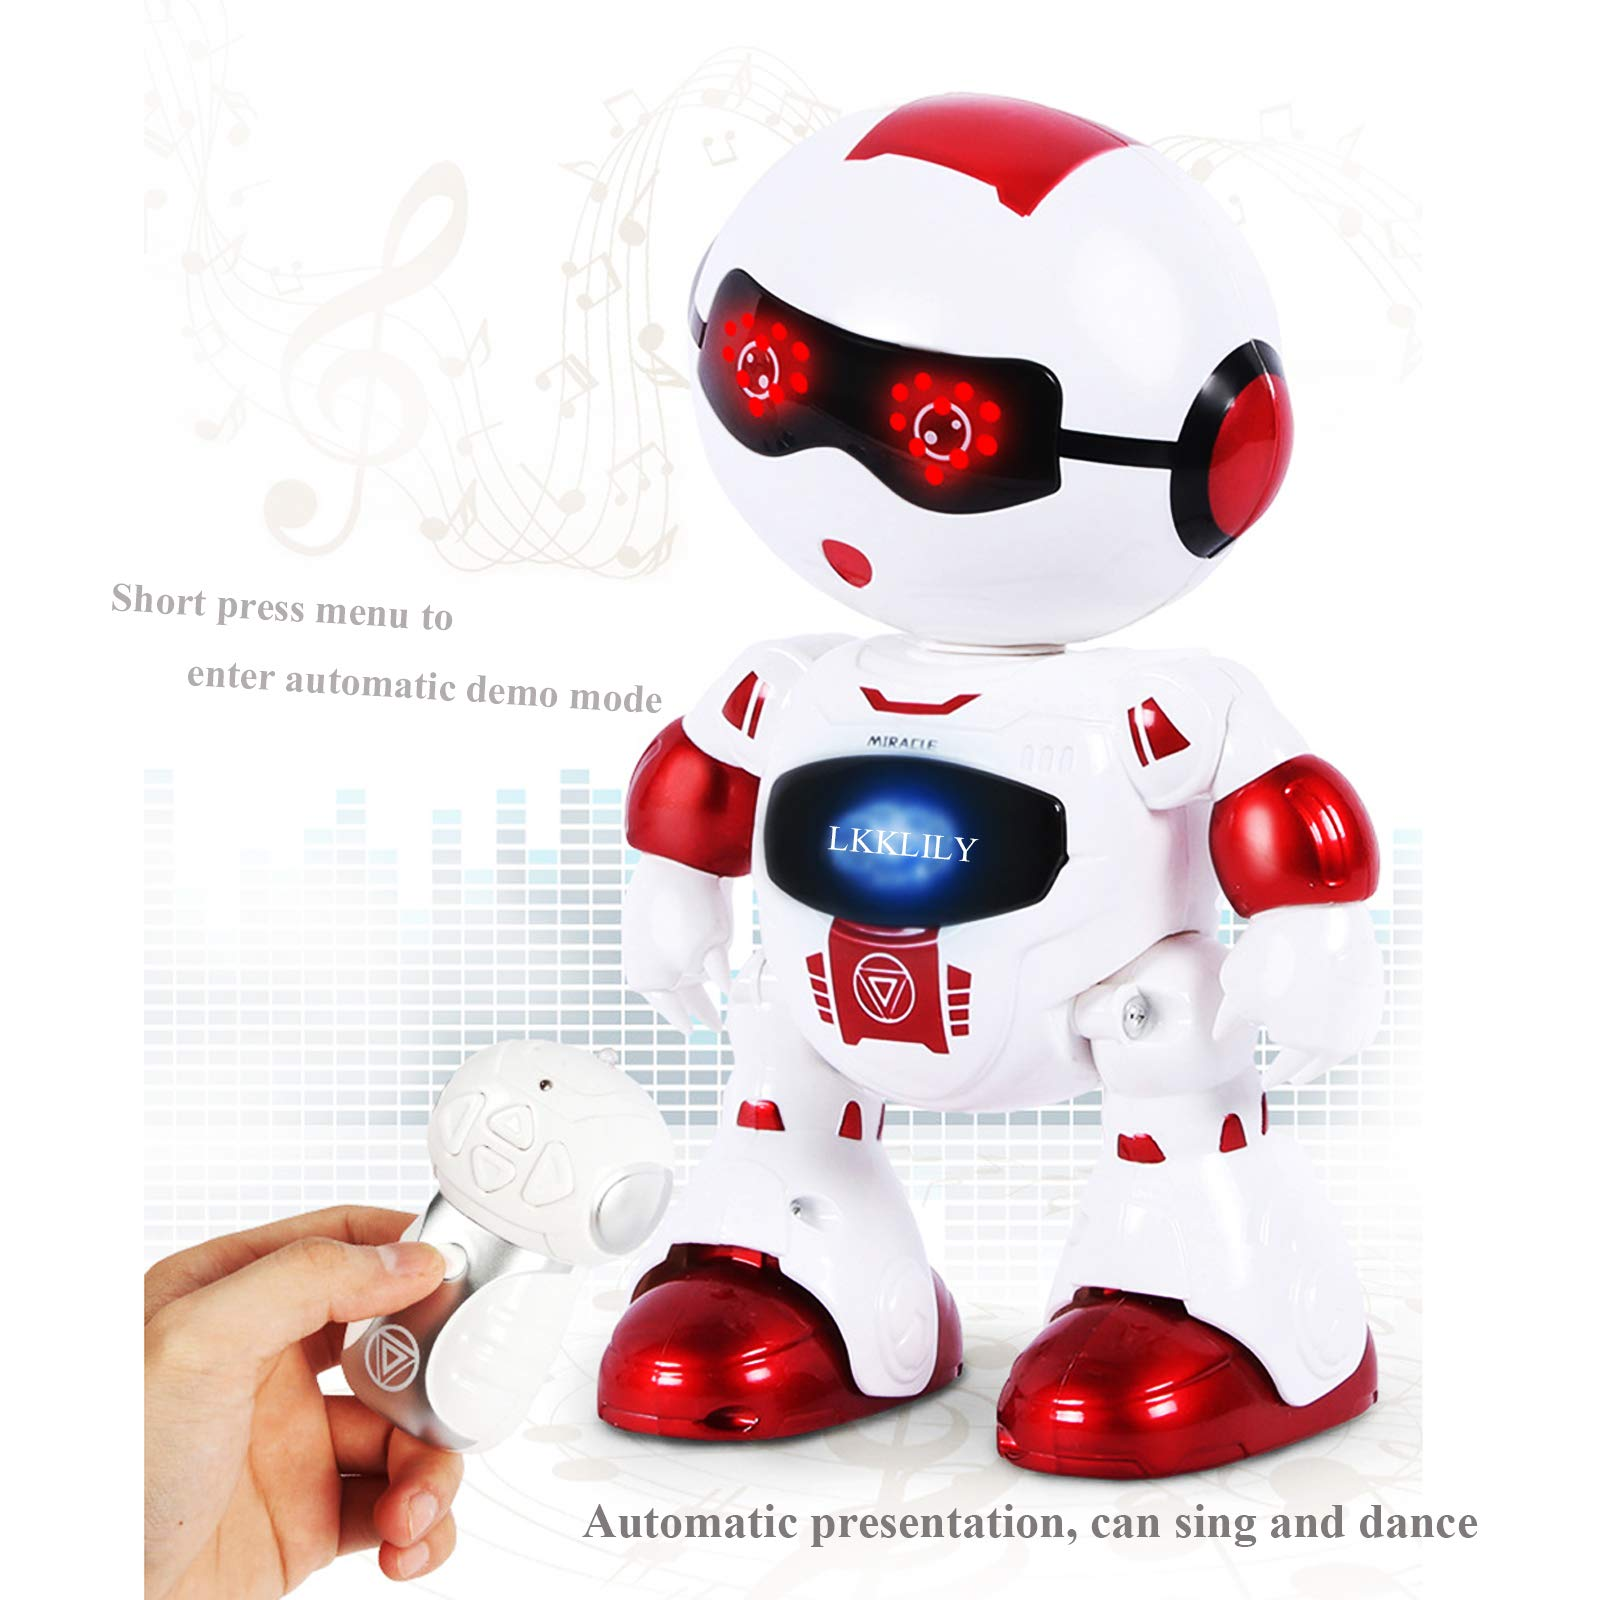 LKKLILY Remote Control Robot with Touch Interaction Music Dance and Lights Remote Toy for Children Kids and Kids Gifts (Red) by LKKLILY (Image #5)